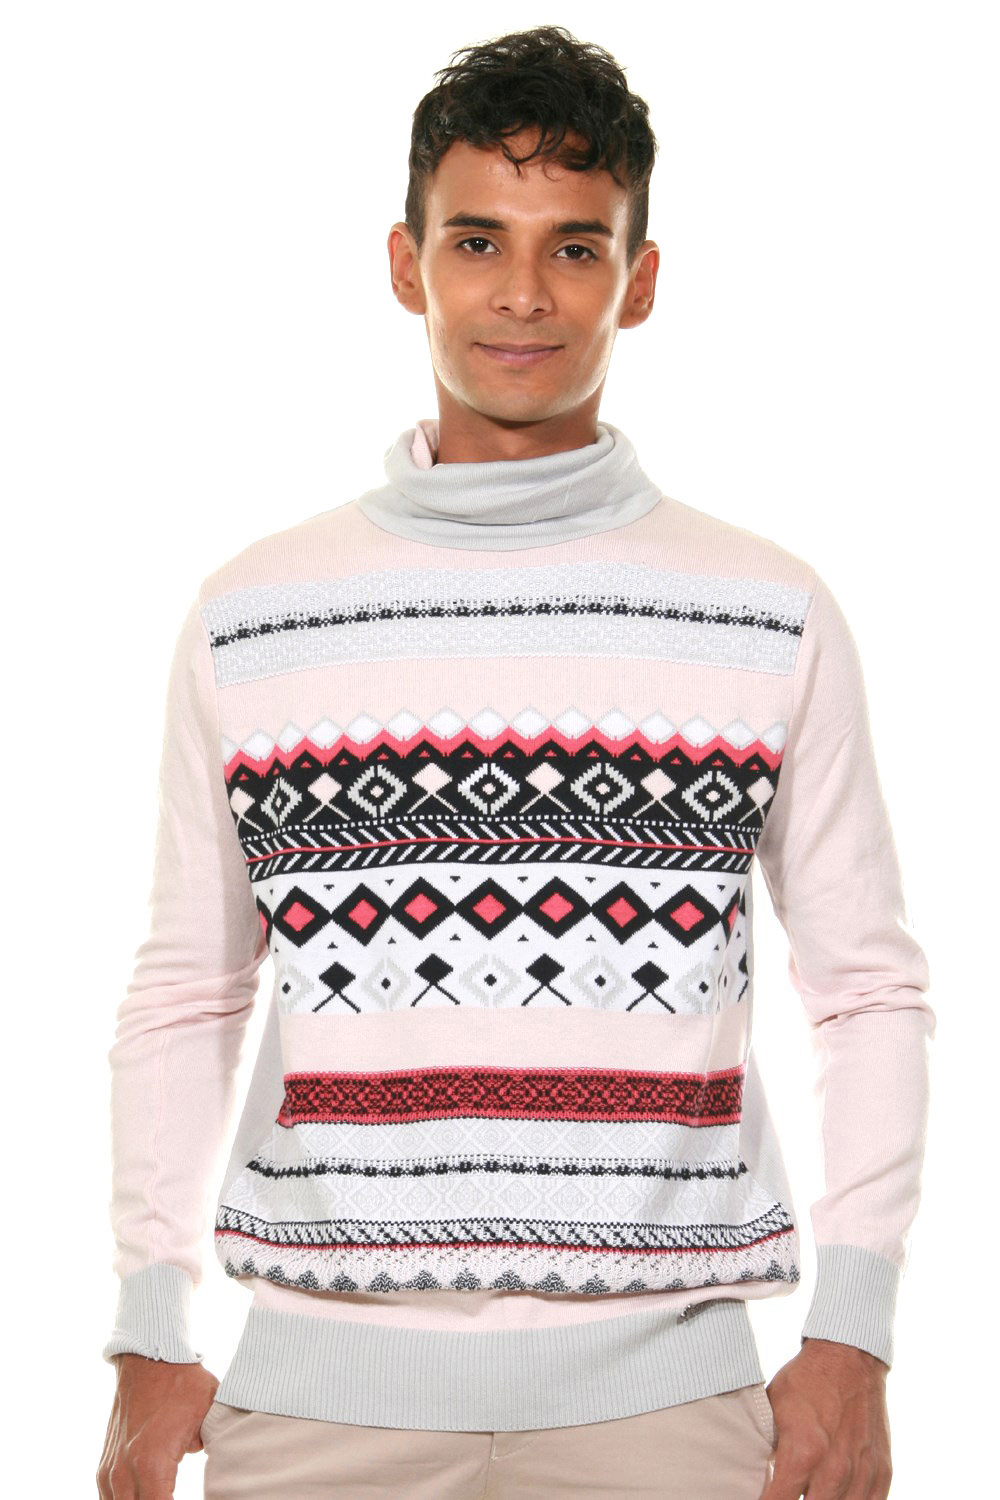 FIOCEO jumper at oboy.com